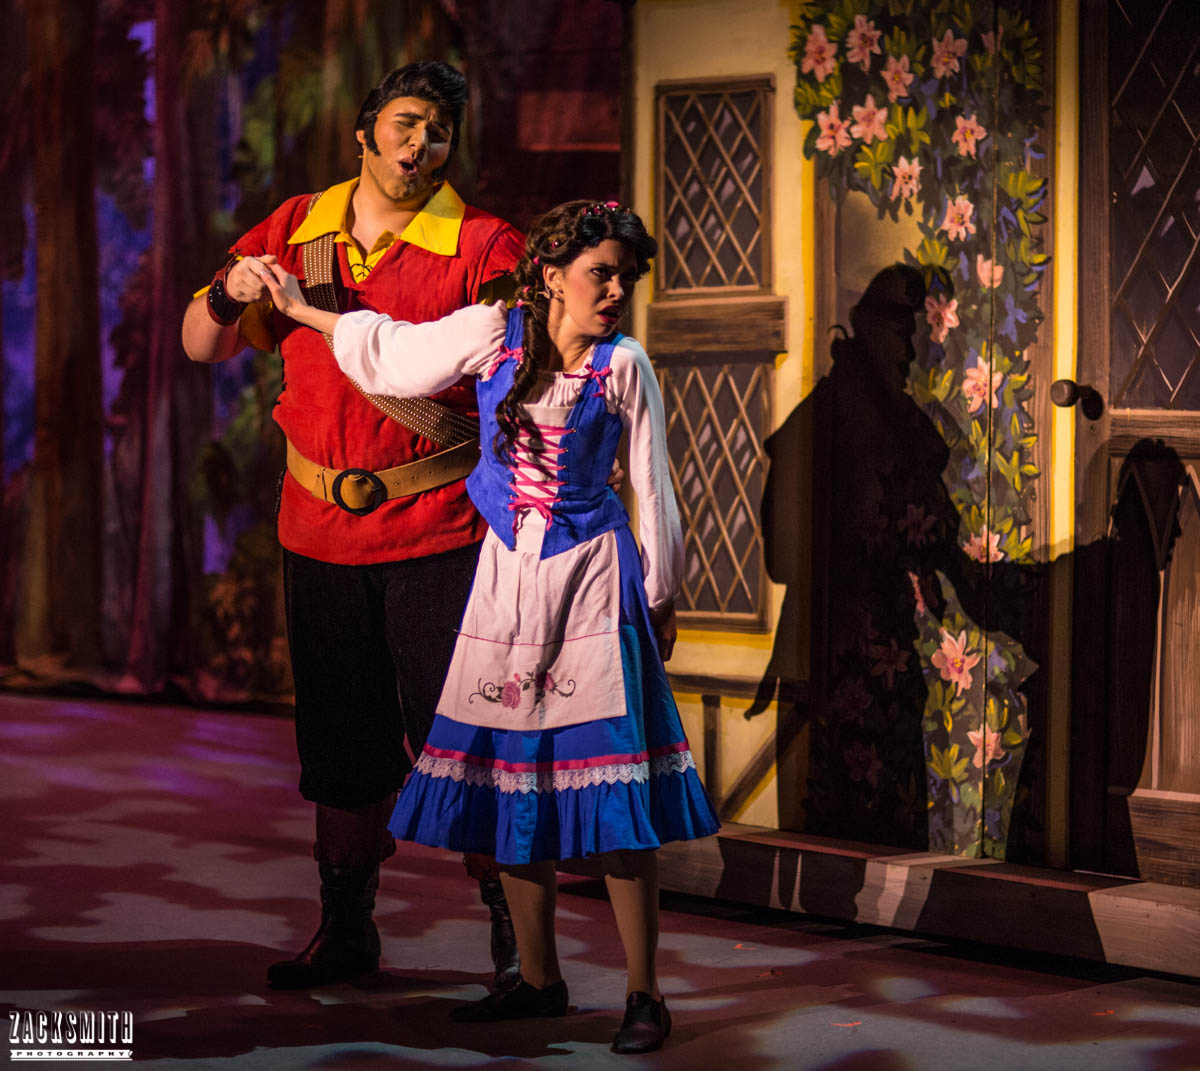 Beauty and the Beast The Performing Arts Academy Talent Performance Photography Zack Smith Photographer Chalmette Gaston and Belle Me Disgust Funny Musical Love